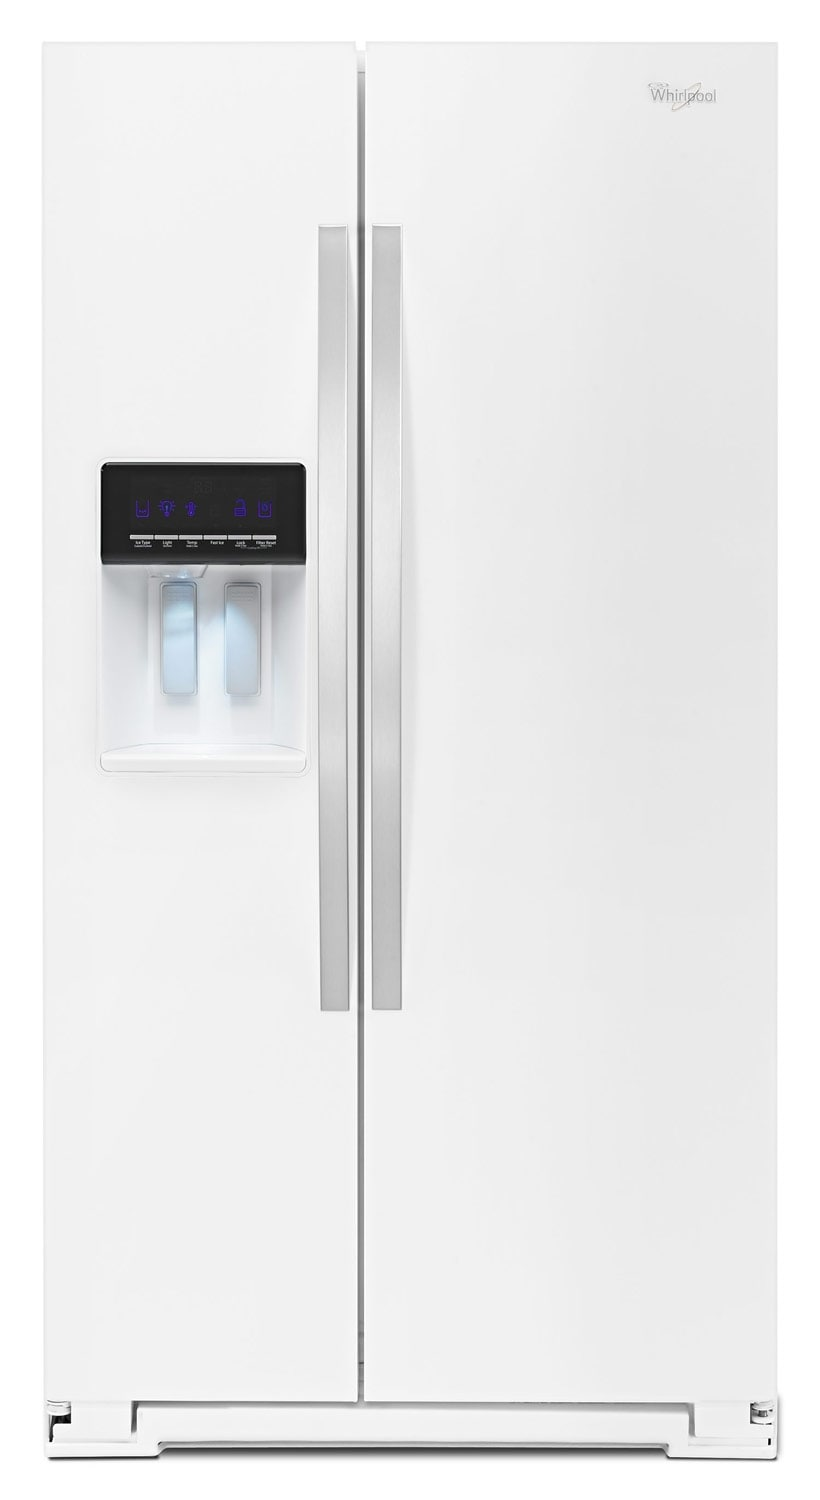 Whirlpool White Side-by-Side Refrigerator (25.6 Cu. Ft.) - WRS586FIEH